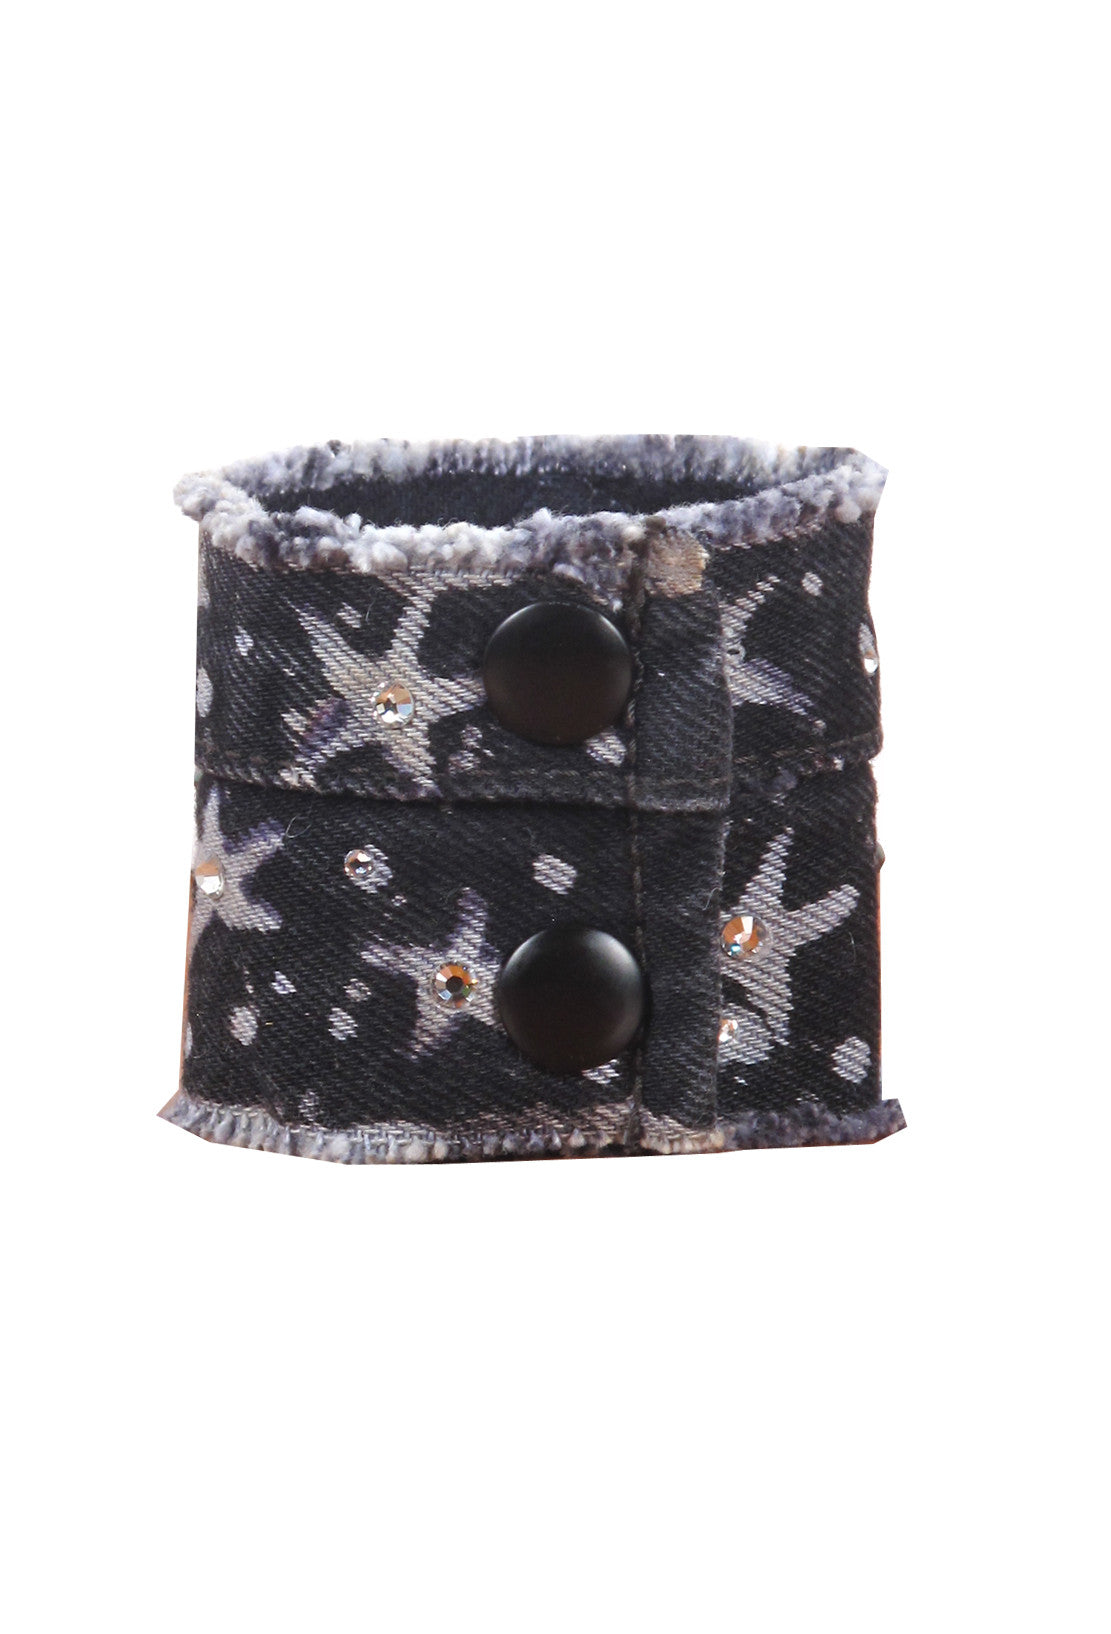 GENUINE AAA TAHITIAN PEARL STARS CUFF- AVAILABLE FOR IMMEDIATE DELIVERY